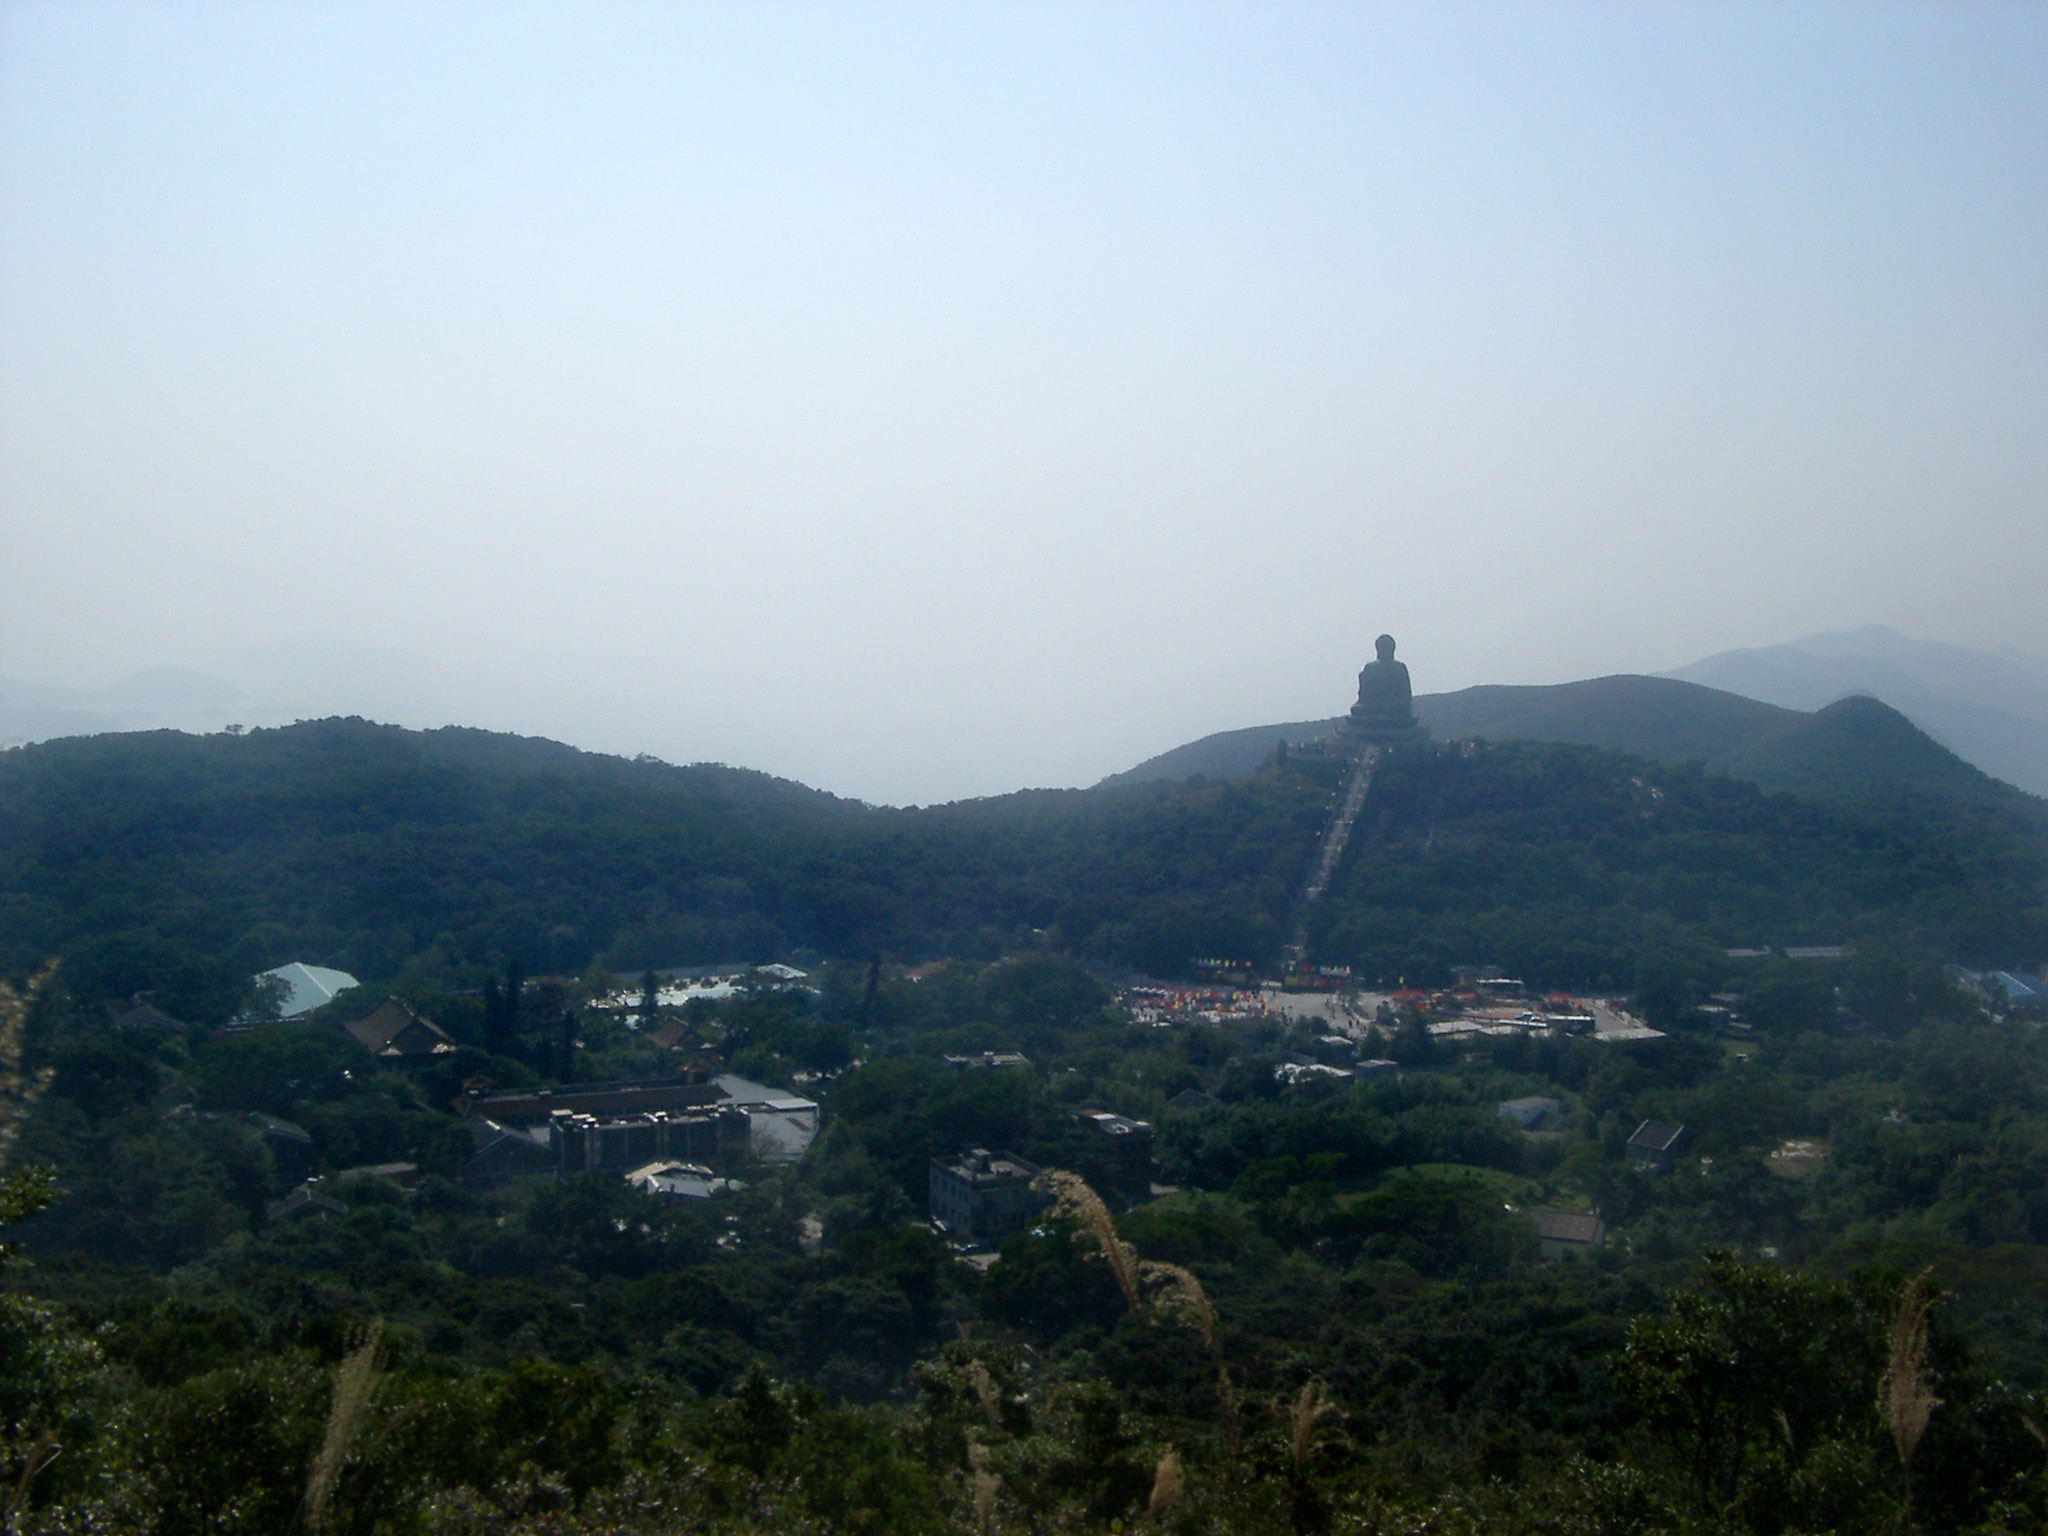 Panorama Natural View in Hong Kong with Famous Vintage Big Buddha Structure on Hill Top.